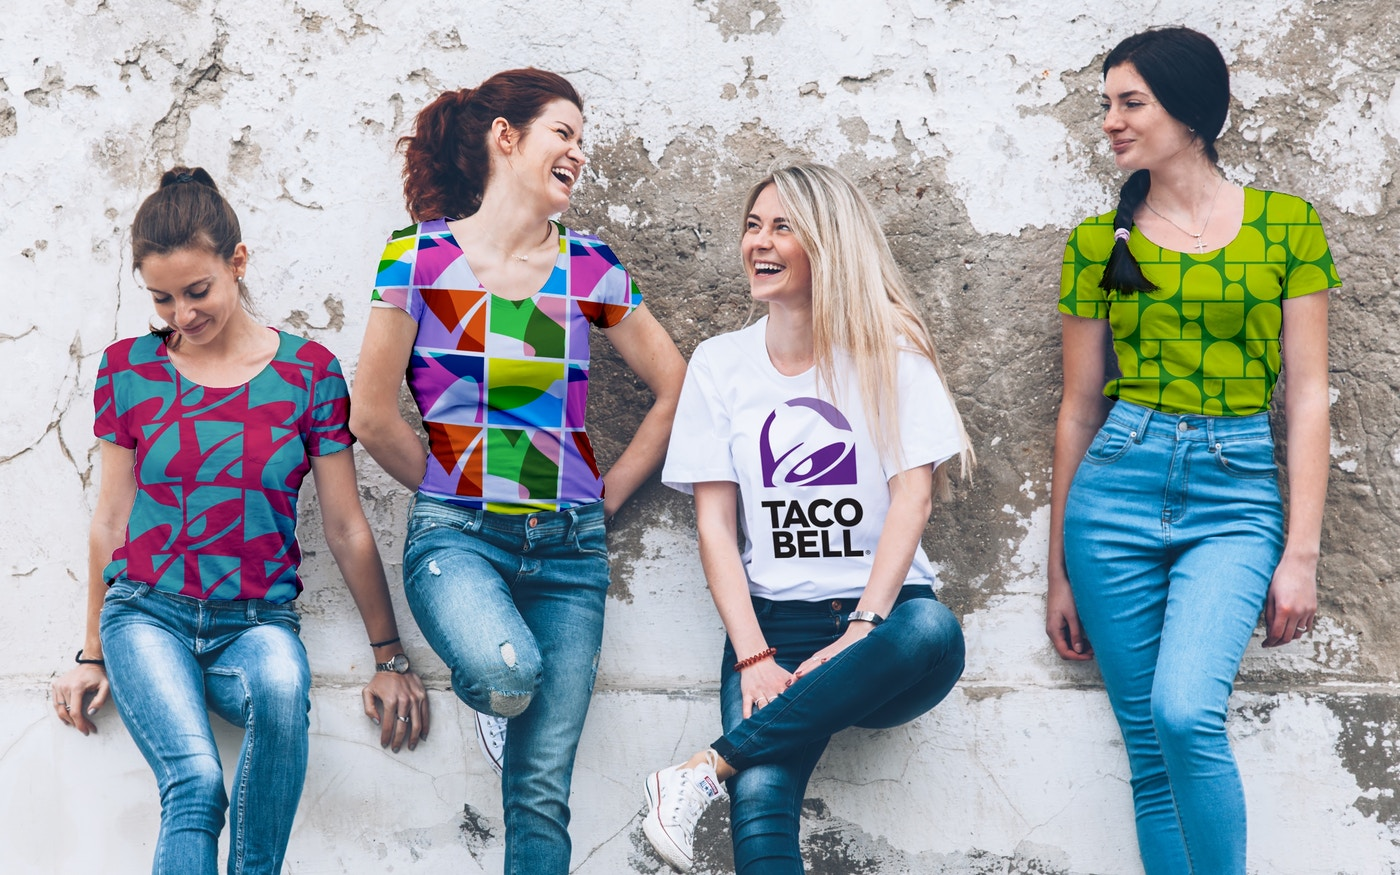 Taco Bell branded swag